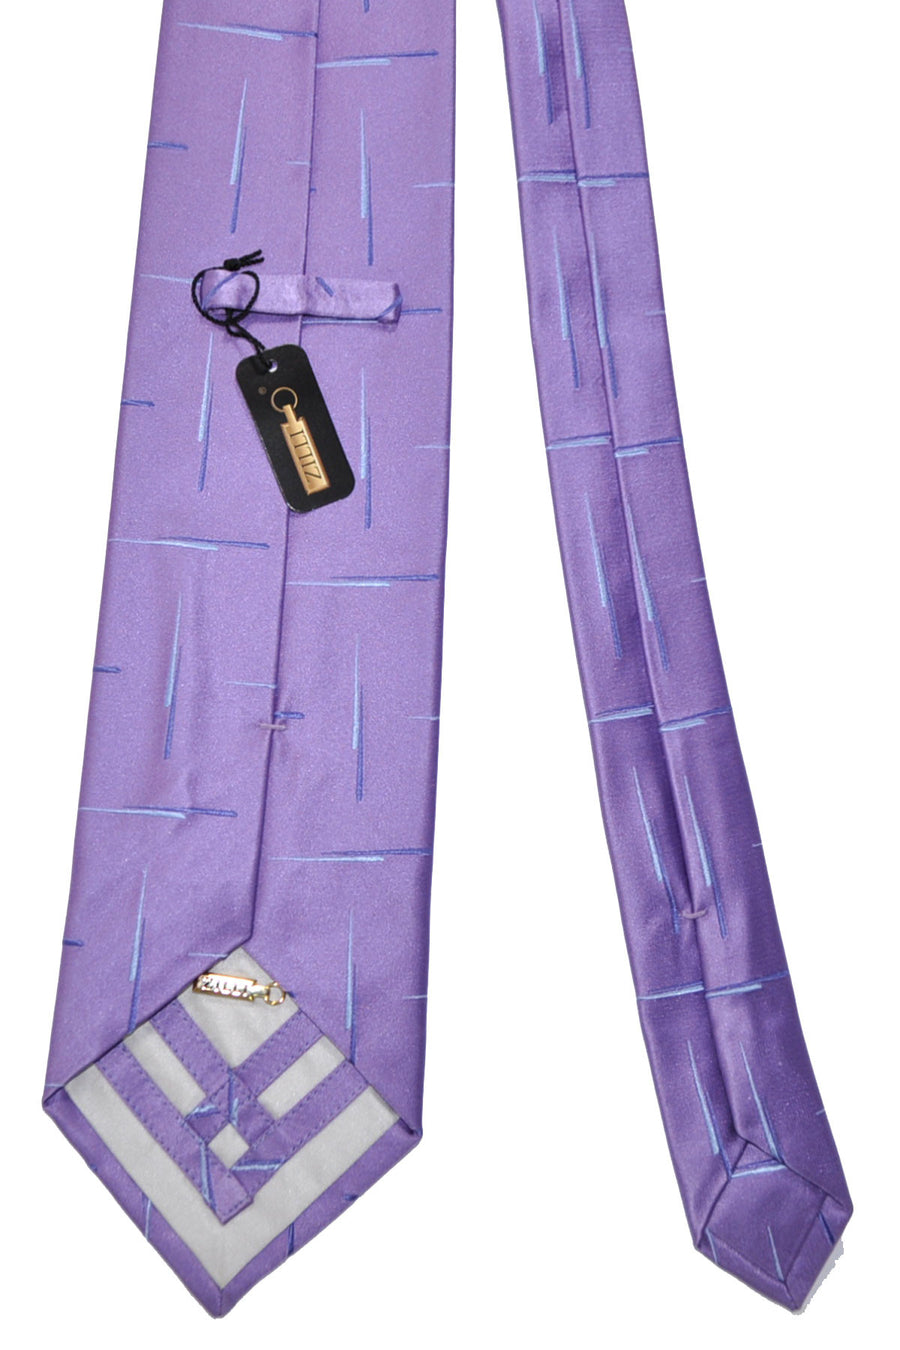 Zilli Tie Lilac Blue - Wide Necktie BLACK FRIDAY SALE